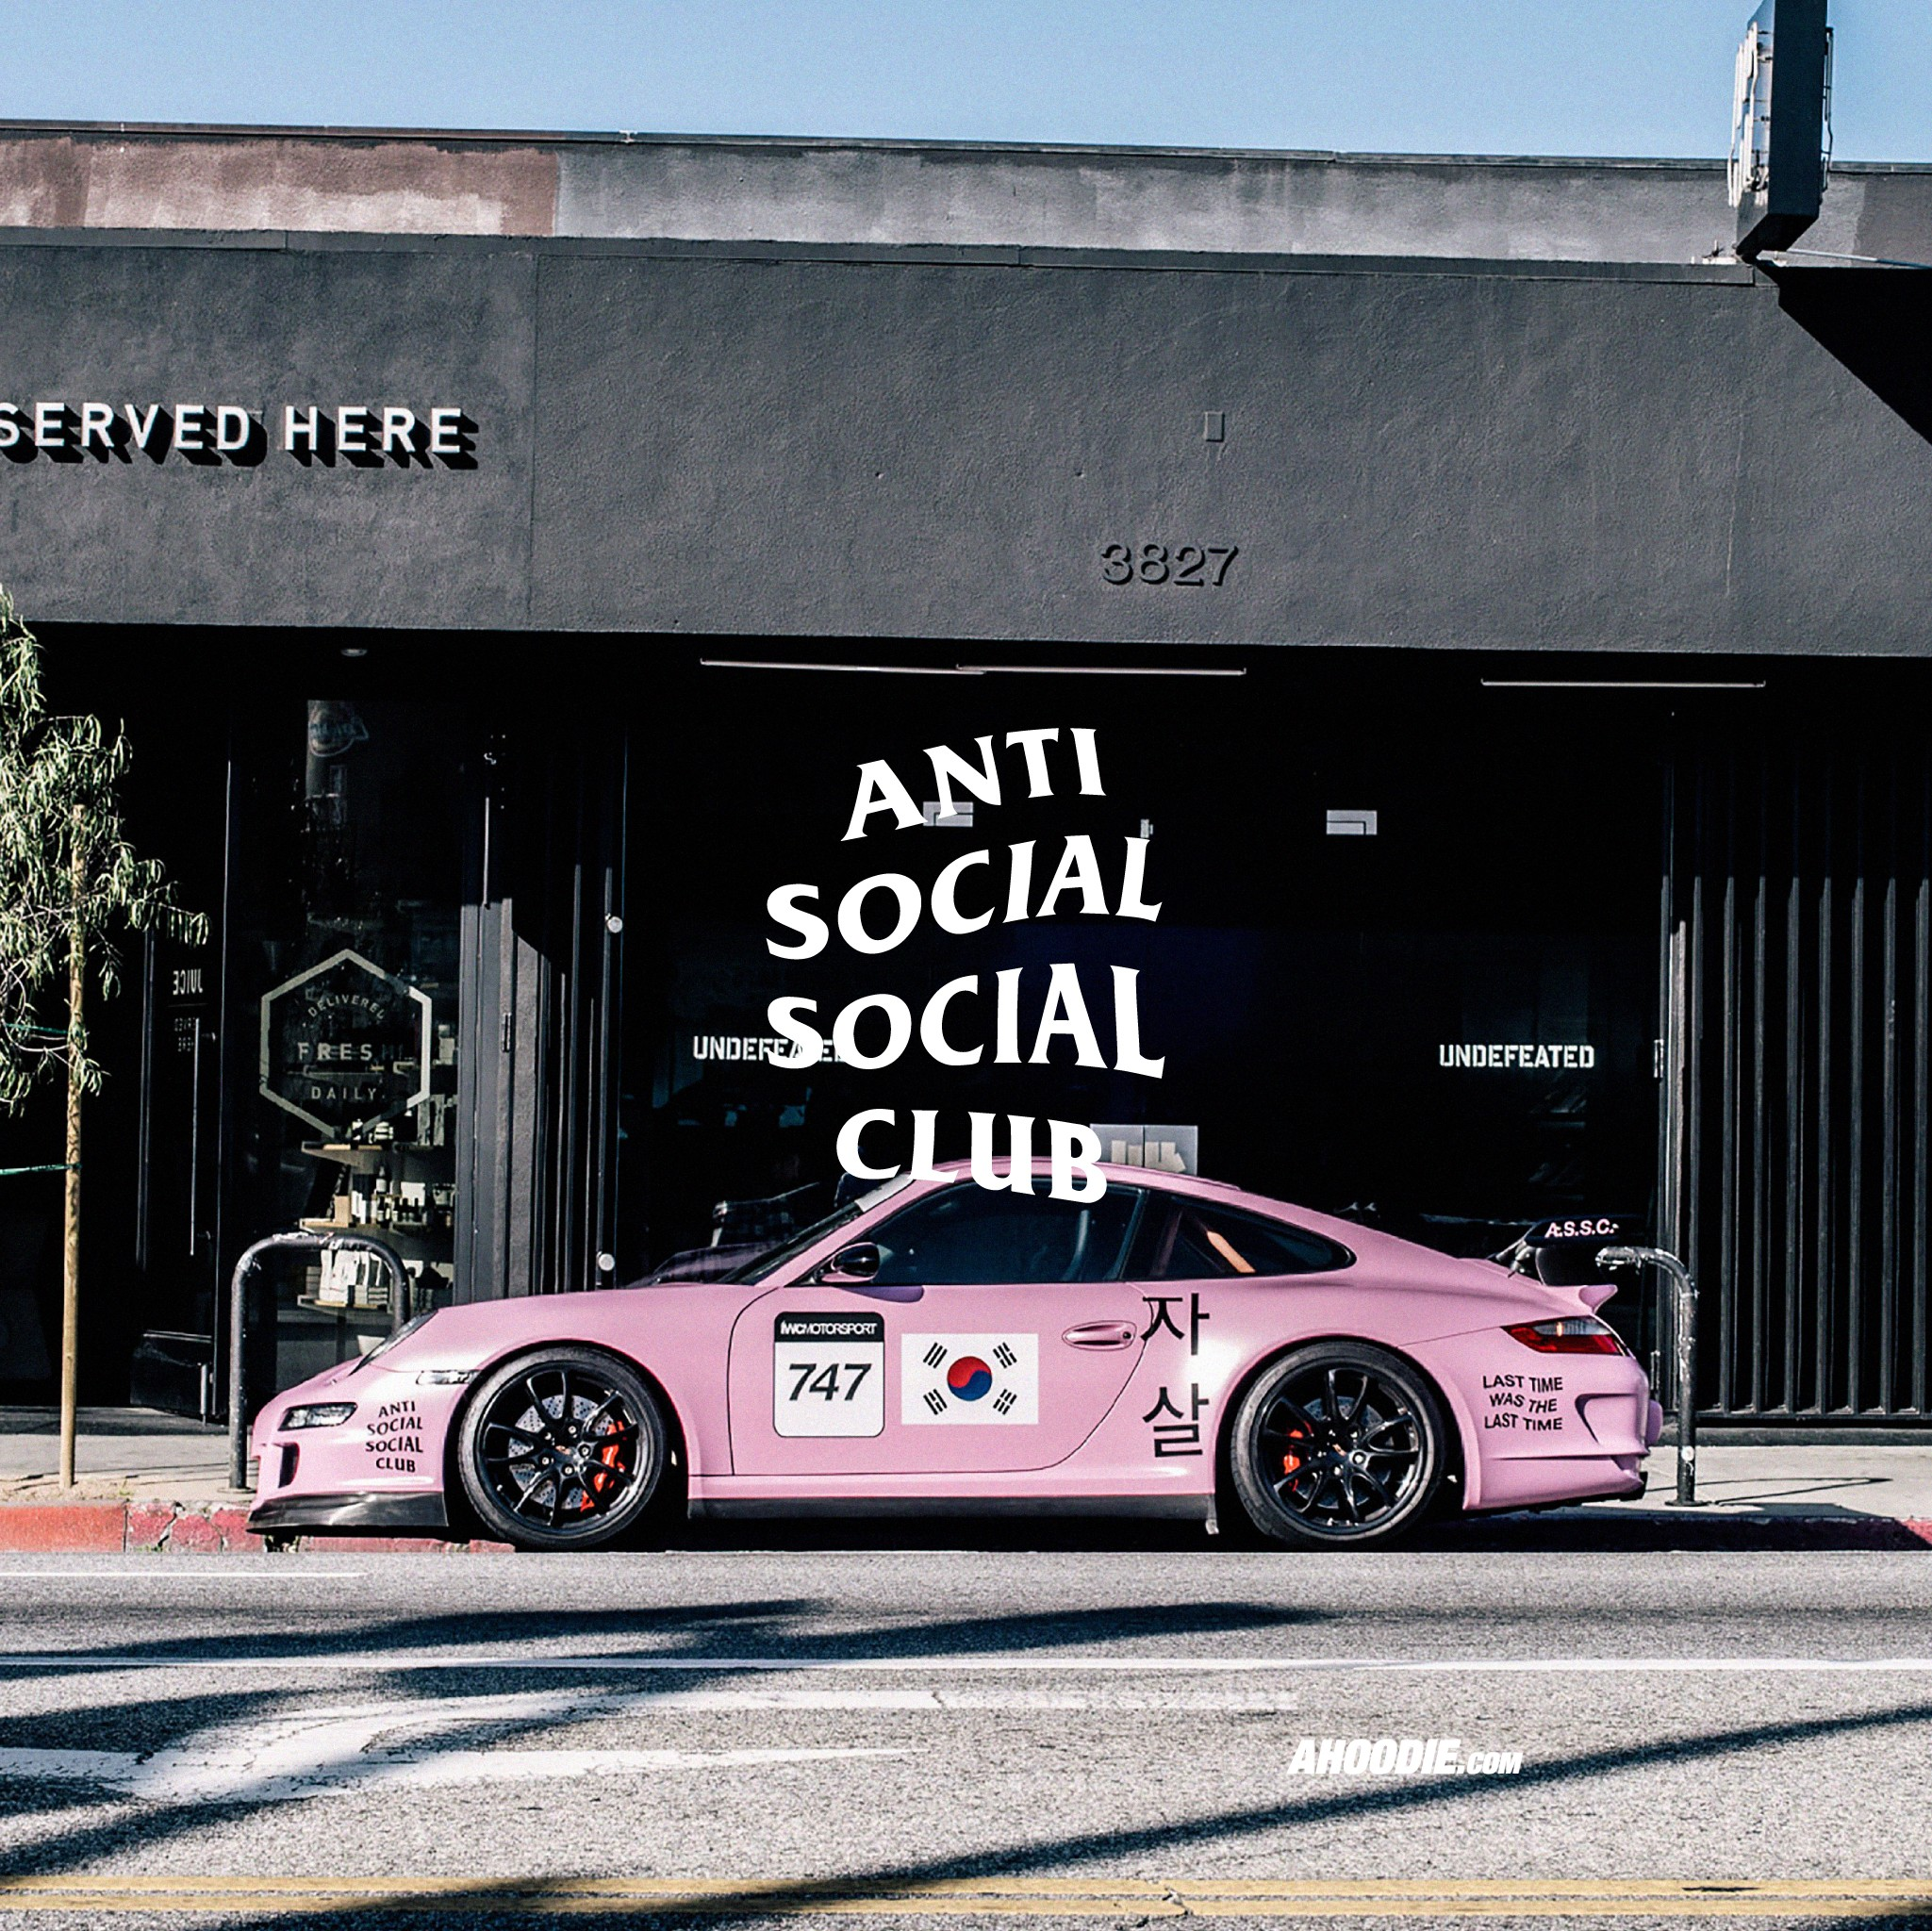 Anti Social Social Club Pink Porsche Wallpaper